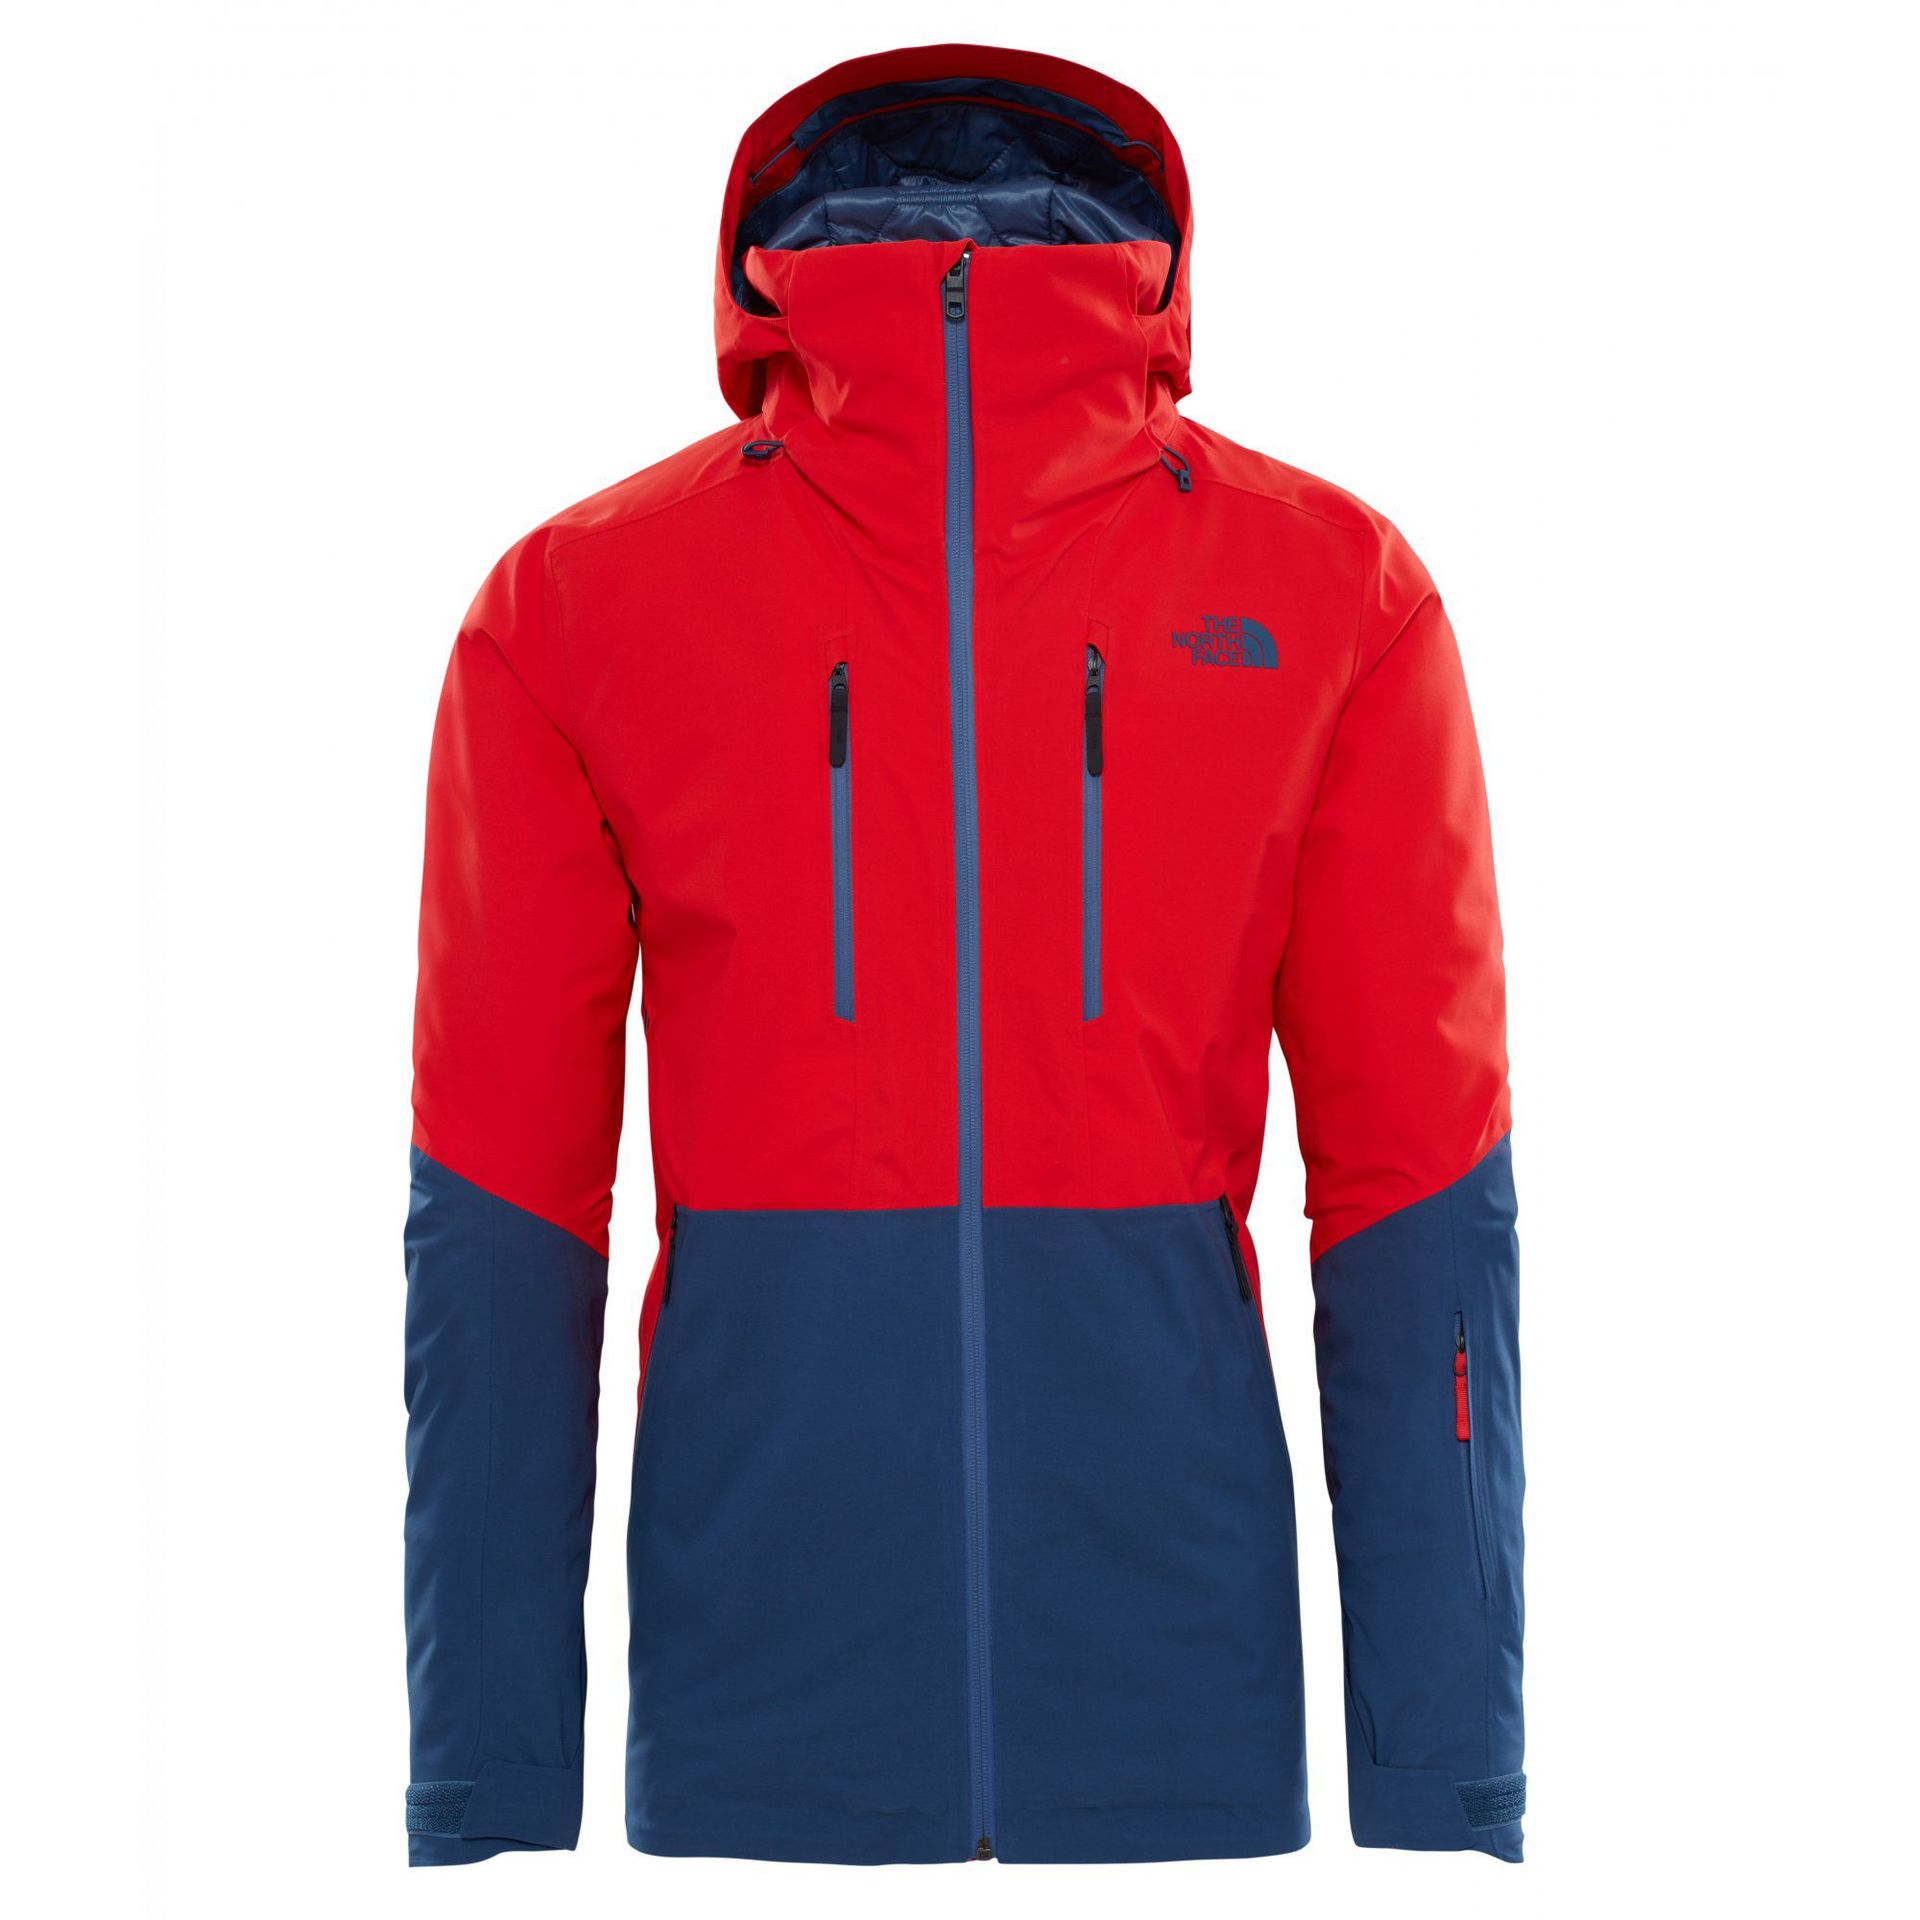 KURTKA THE NORTH FACE ANONYM CENTENNIAL RED|SHADY BLUE 1